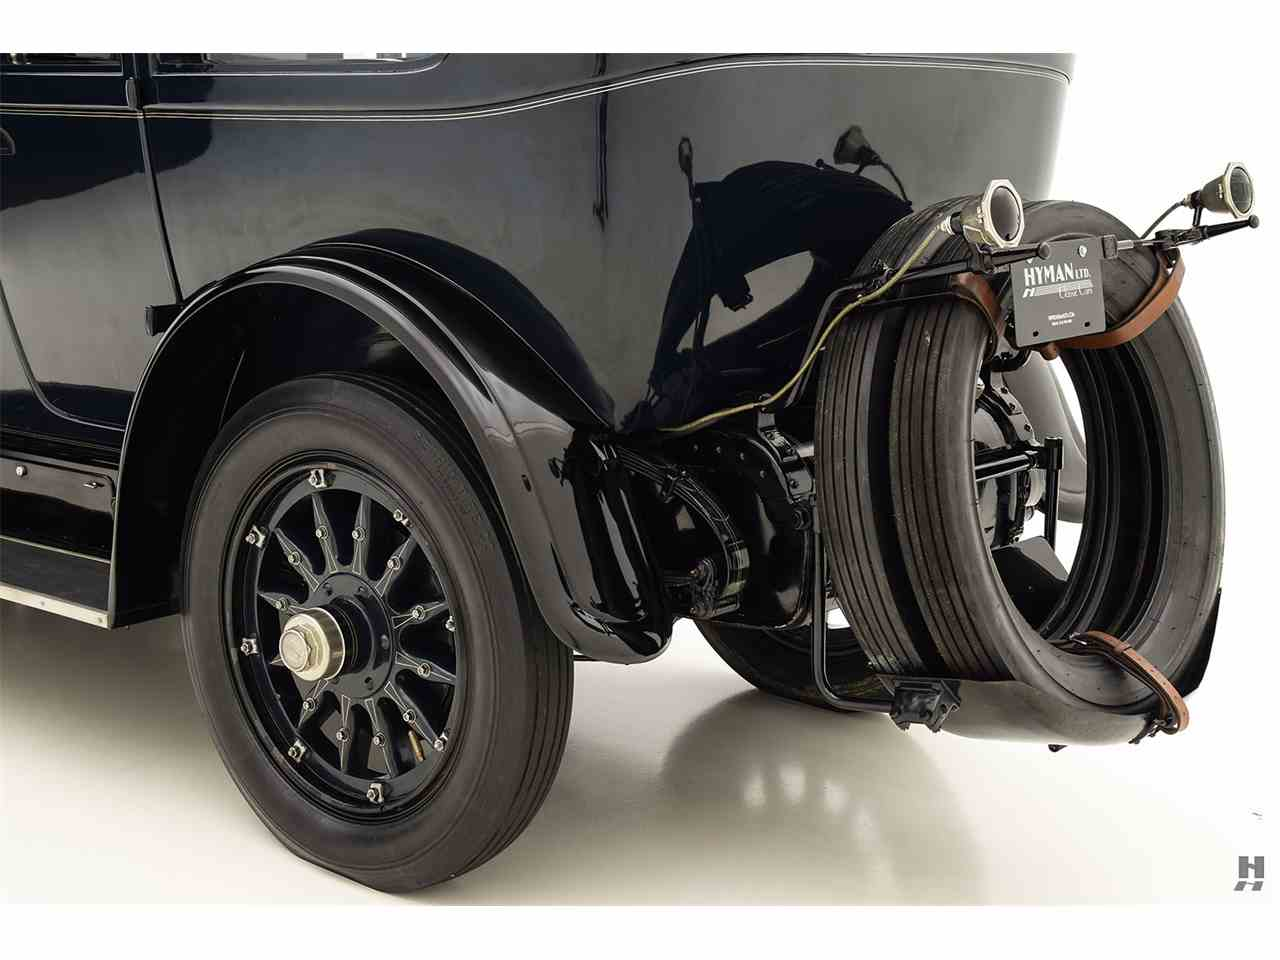 Large Picture of 1924 Model 48 located in Saint Louis Missouri Offered by Hyman Ltd. Classic Cars - LDV9